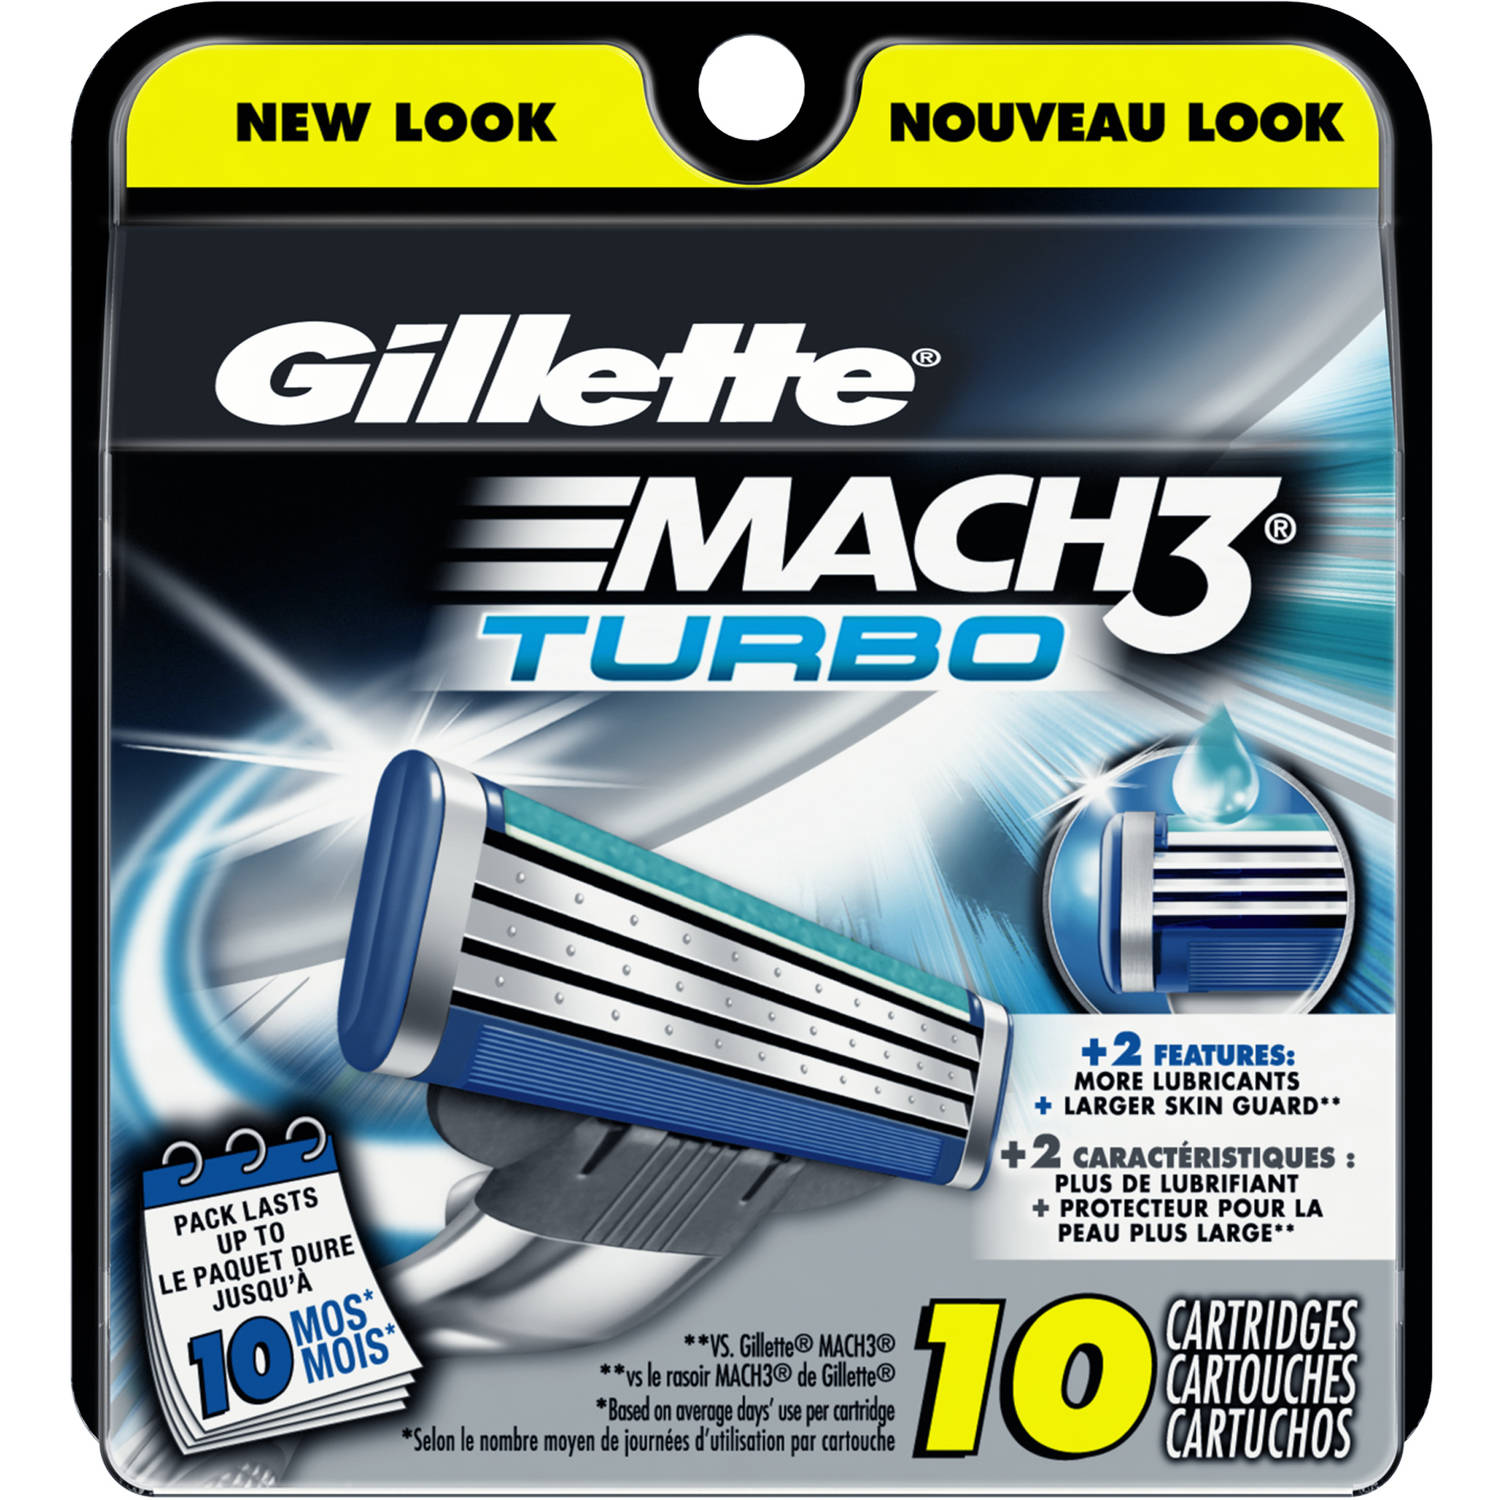 Gillette Mach3 Turbo Men's Razor Blade Refills, 10 count